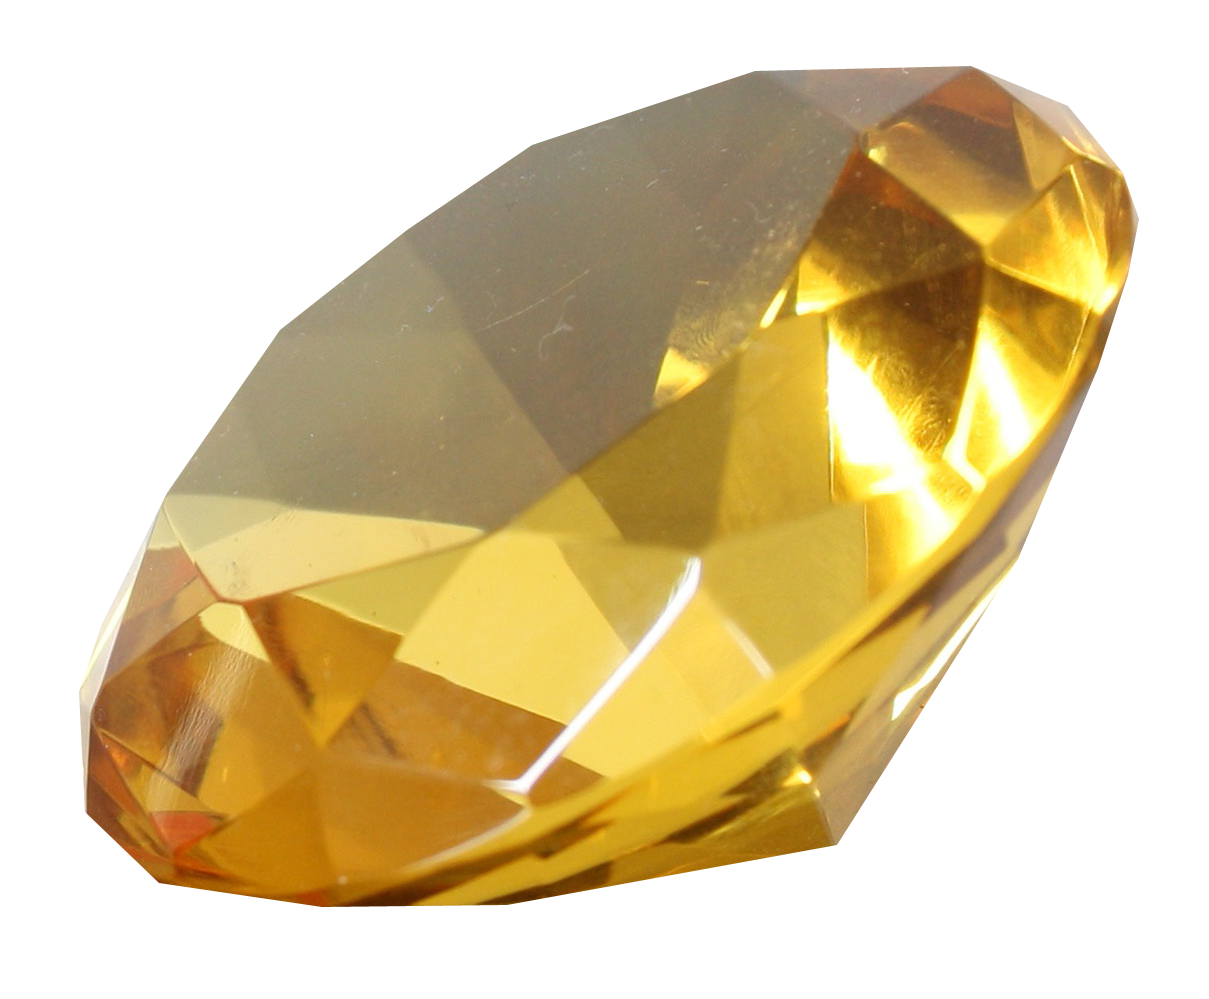 Gold diamond png. Golden image purepng free